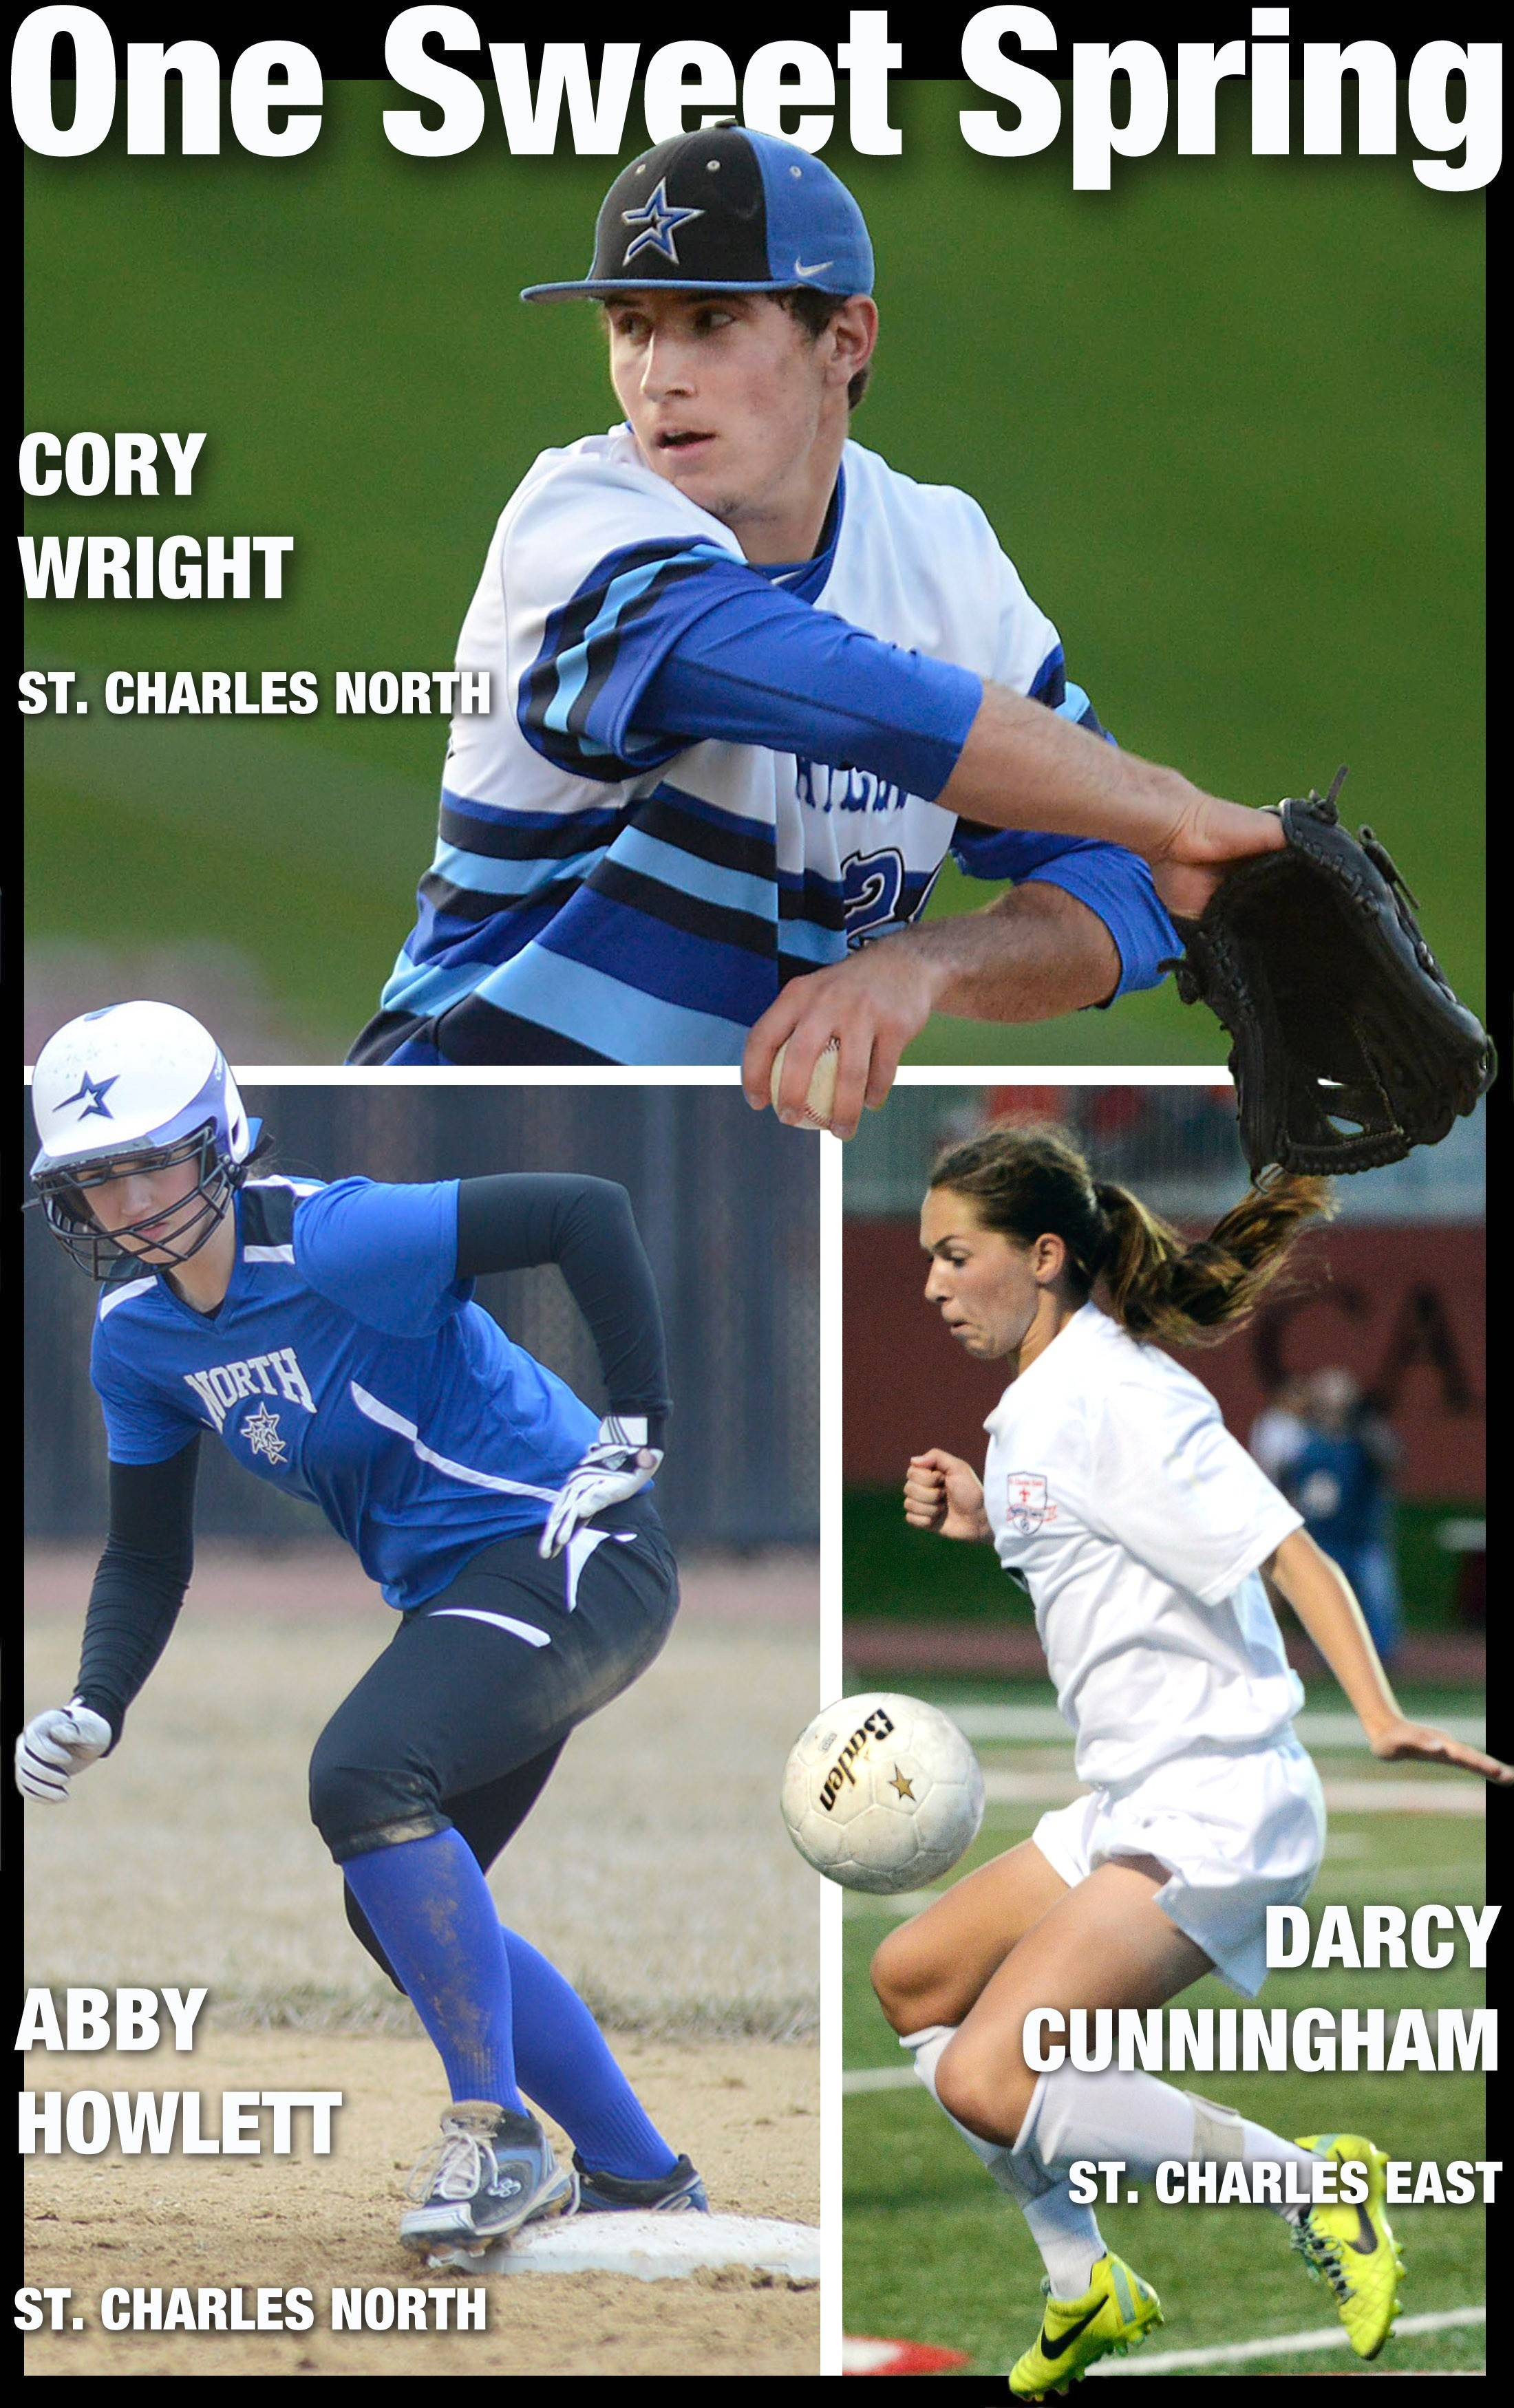 Cory Wright of St. Charles North, Abby Howlett of St. Charles North and Darcy Cunningham of St. Charles East are the Daily Herald Tri-Cities All-Area Honorary Team Captains for Spring 2015.